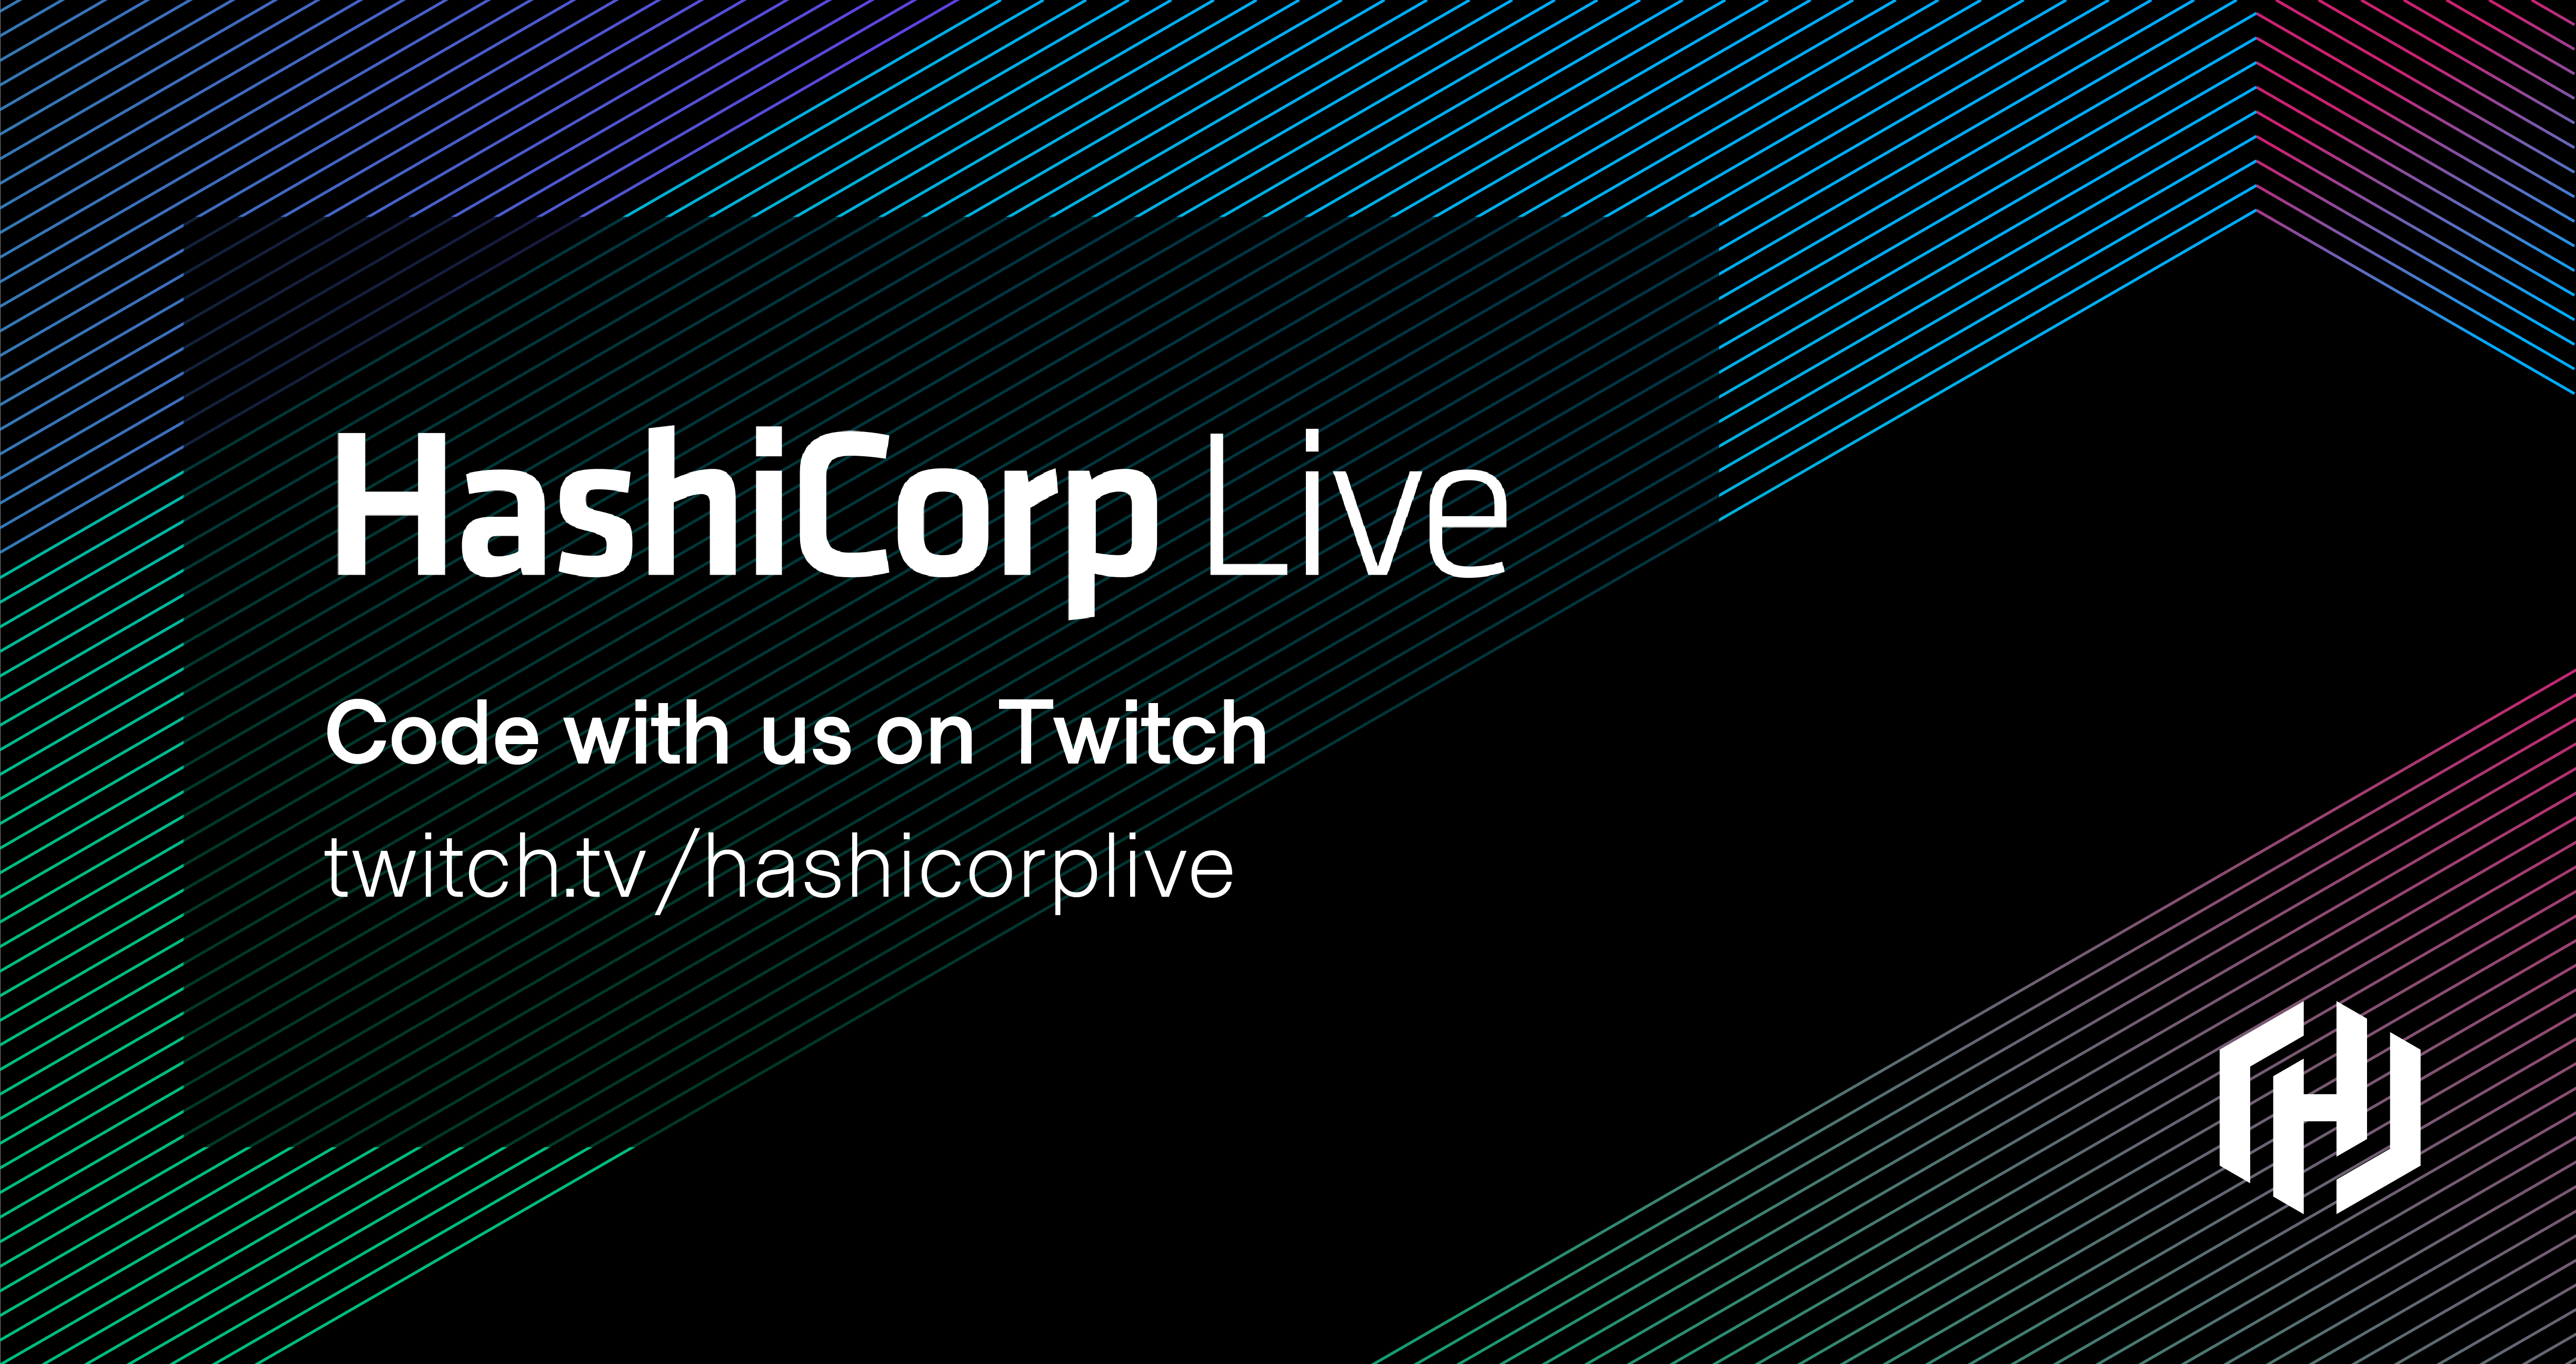 Code with us on Twitch